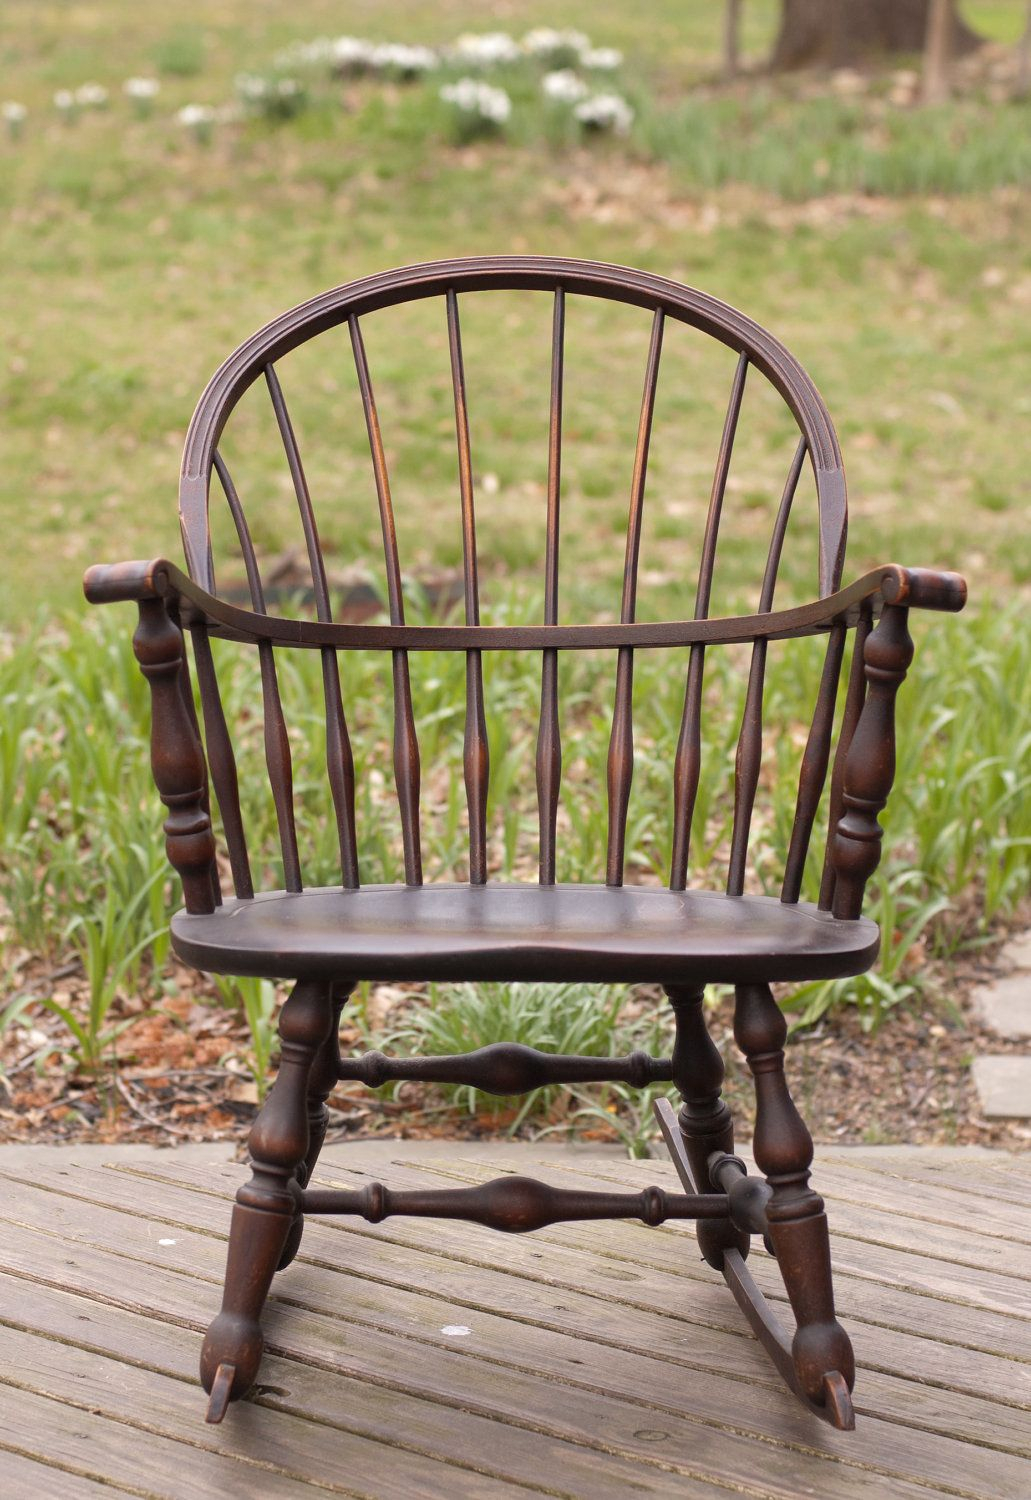 Inspiration about Vintage 1930 Nichols & Stone Windsor Rocking Rocker Chair Intended For Black Back Windsor Rocking Chairs (#4 of 20)